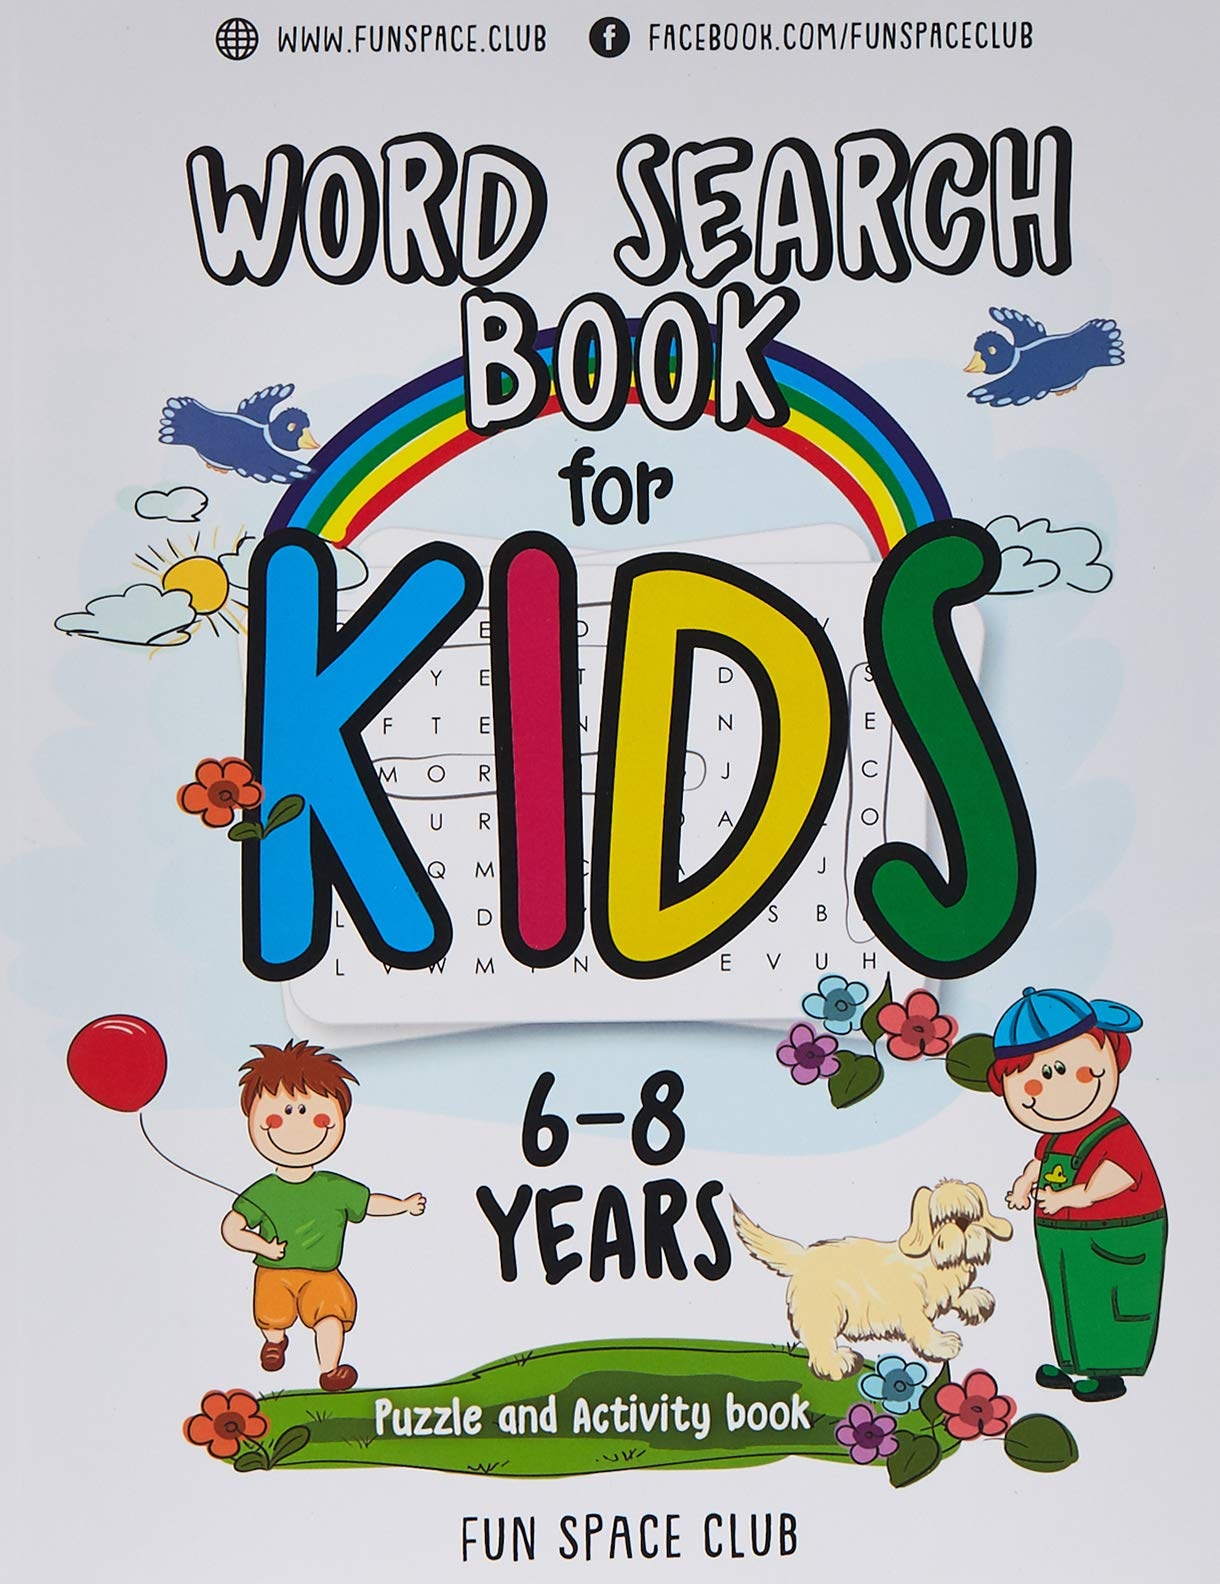 Download Word Search Books For Kids 6-8: Word Search Puzzles For Kids Activities Workbooks Age 6 7 8 Year Olds: Volume 2 (Fun Space... 